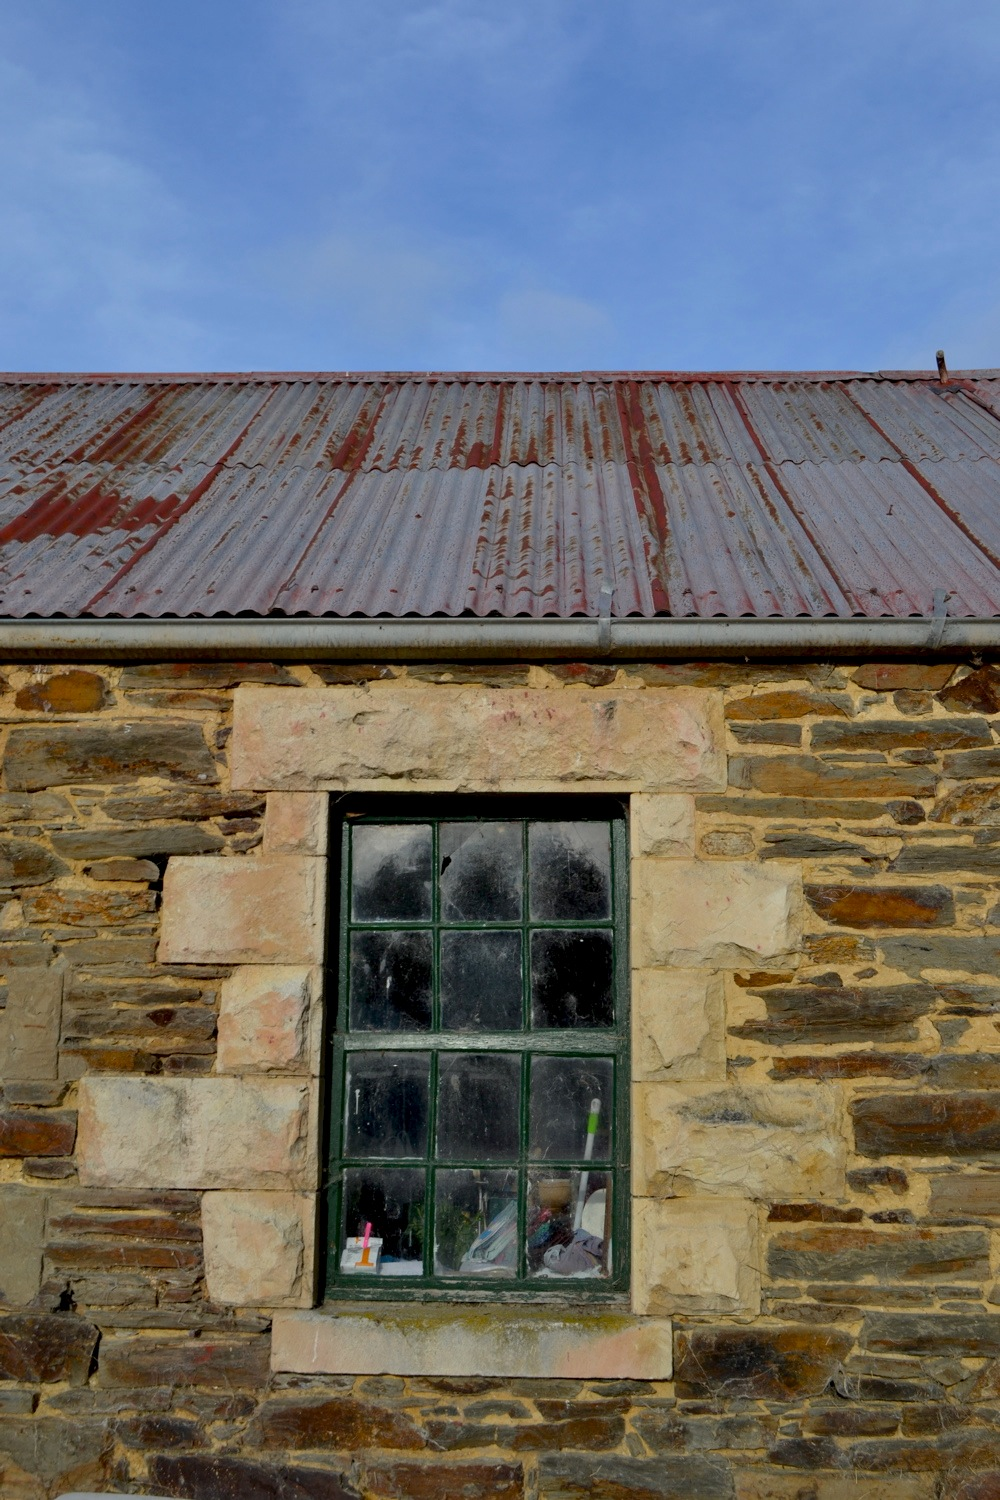 Shearers' Quarters, Shag Valley, New Zealand